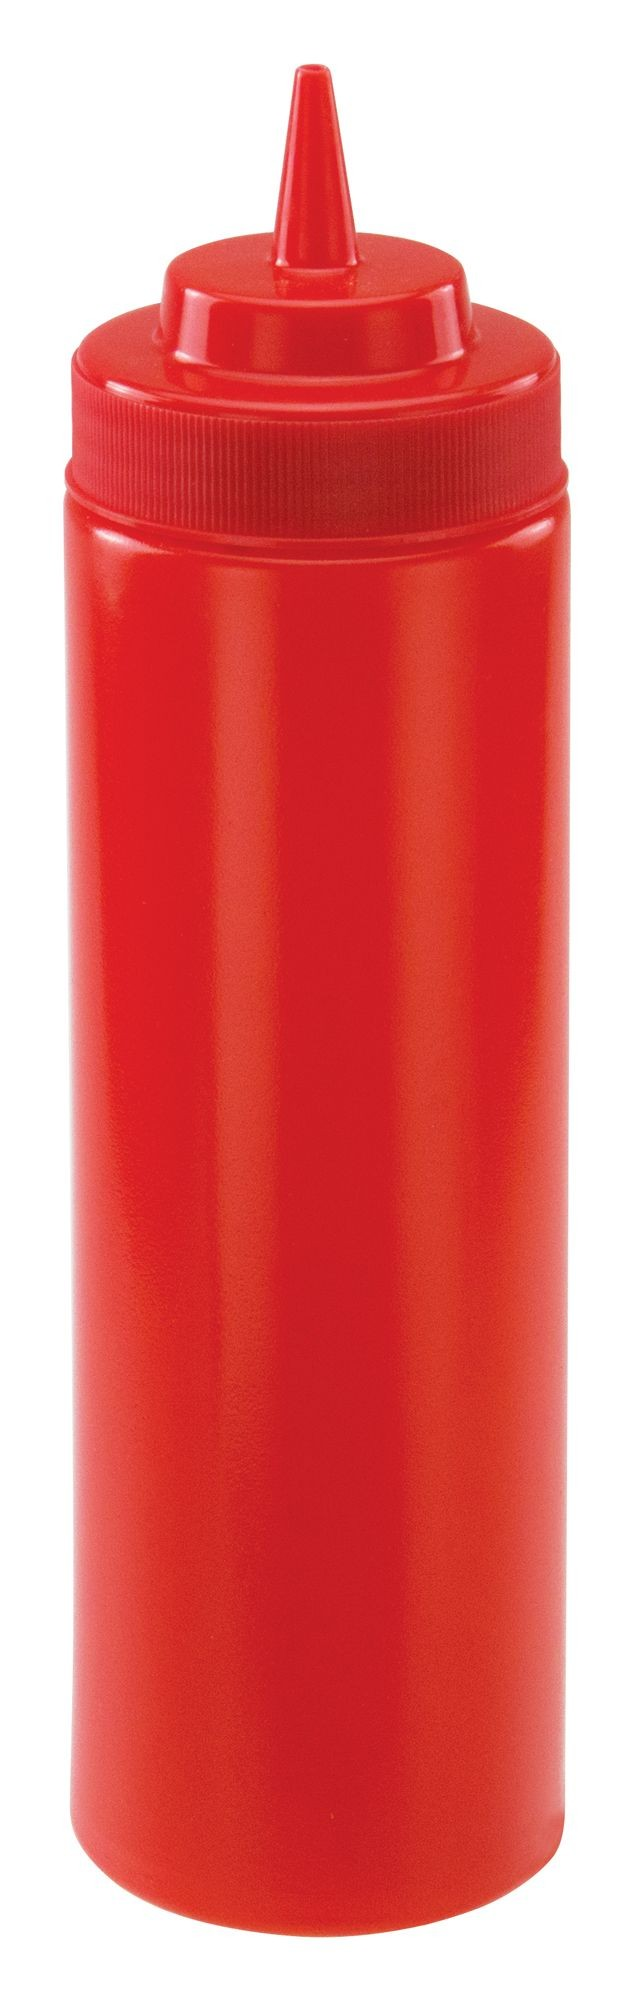 Winco PSW-24R Red Plastic 24 oz. Wide-Mouth Squeeze Bottle